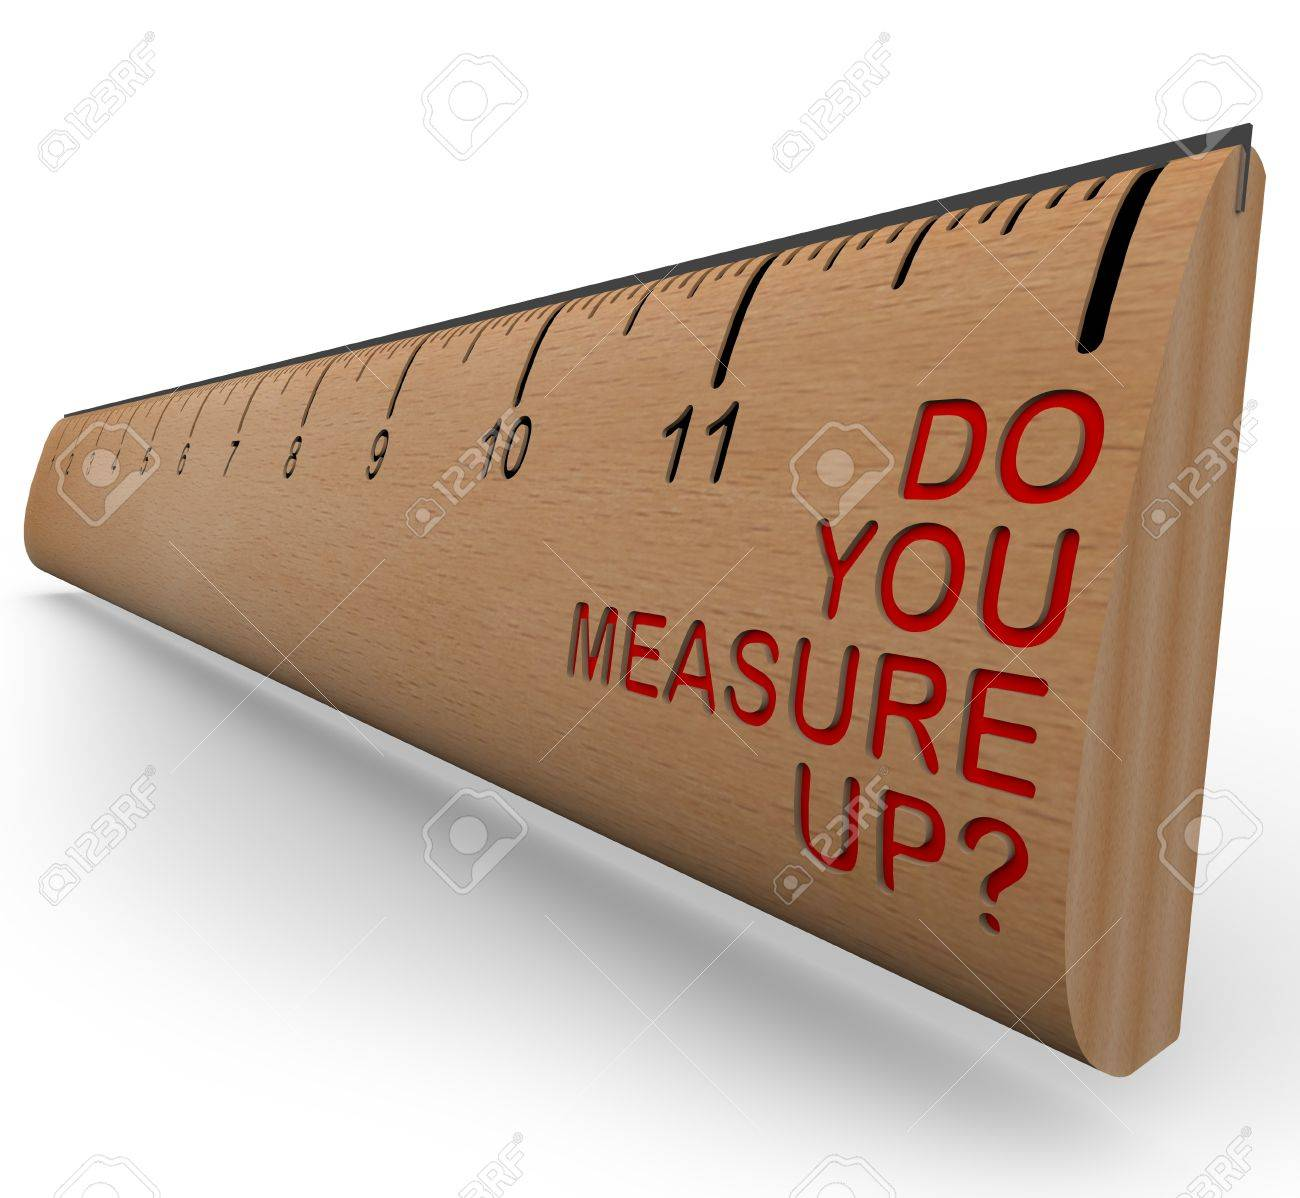 A Wooden Ruler With The Words Do You Measure Up Symbolizing